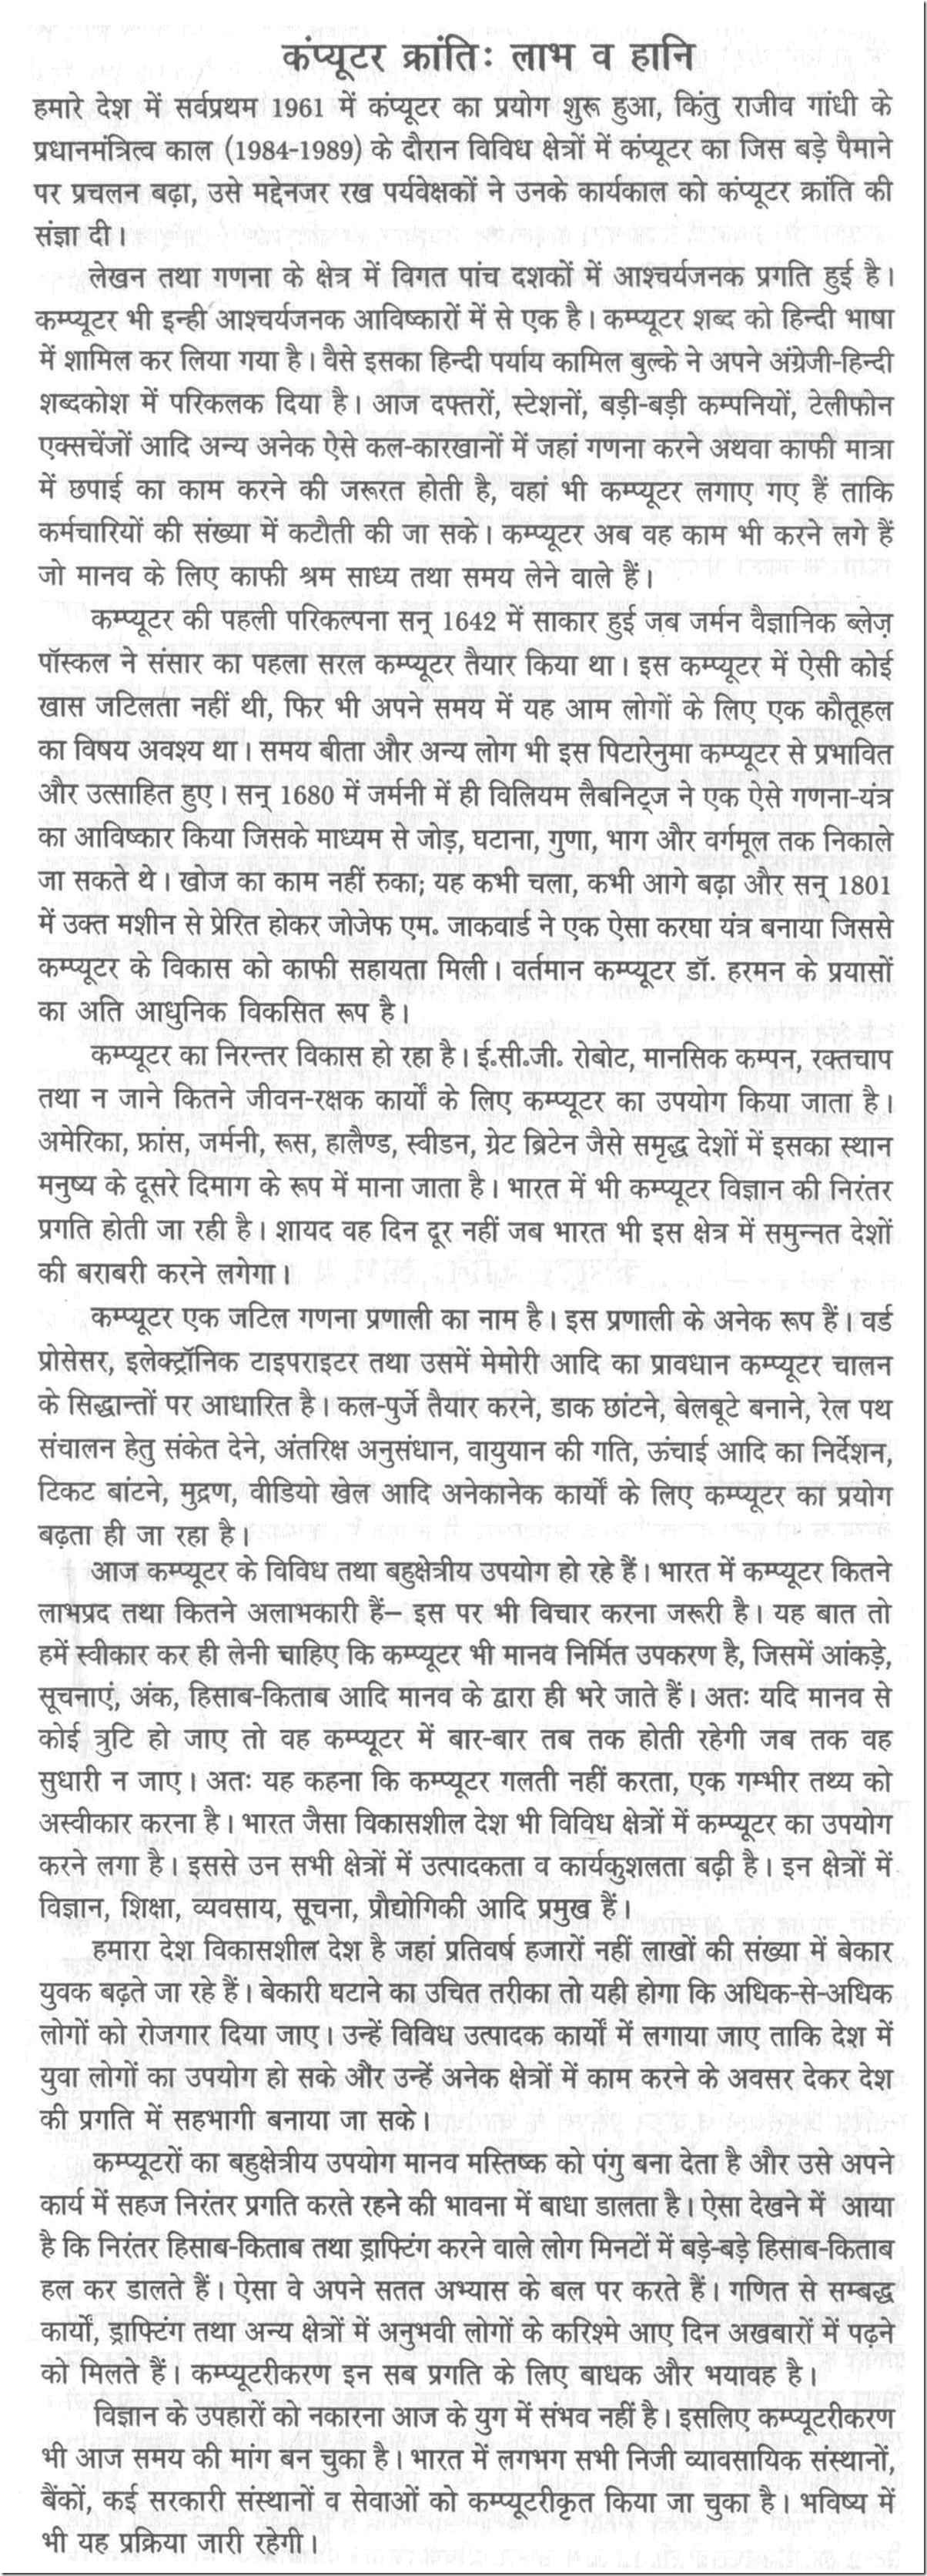 007 Essay Example 10008 Thumb Advantage And Disadvantage Of Shocking Science Advantages Disadvantages With Quotes In Hindi On Language Full